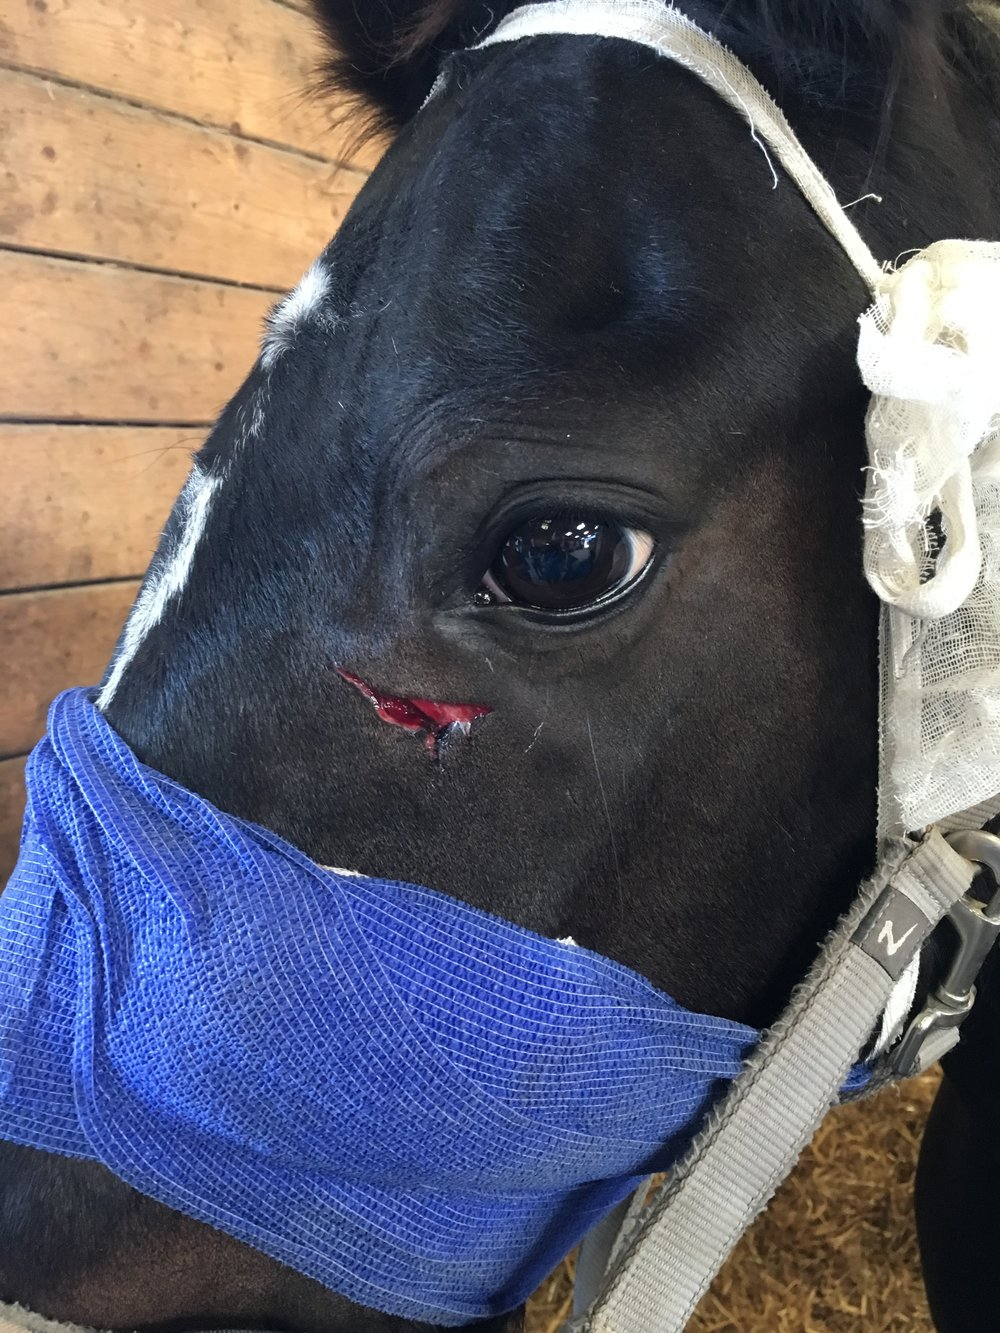 Minstral's wound was now evident when the bandage was moved